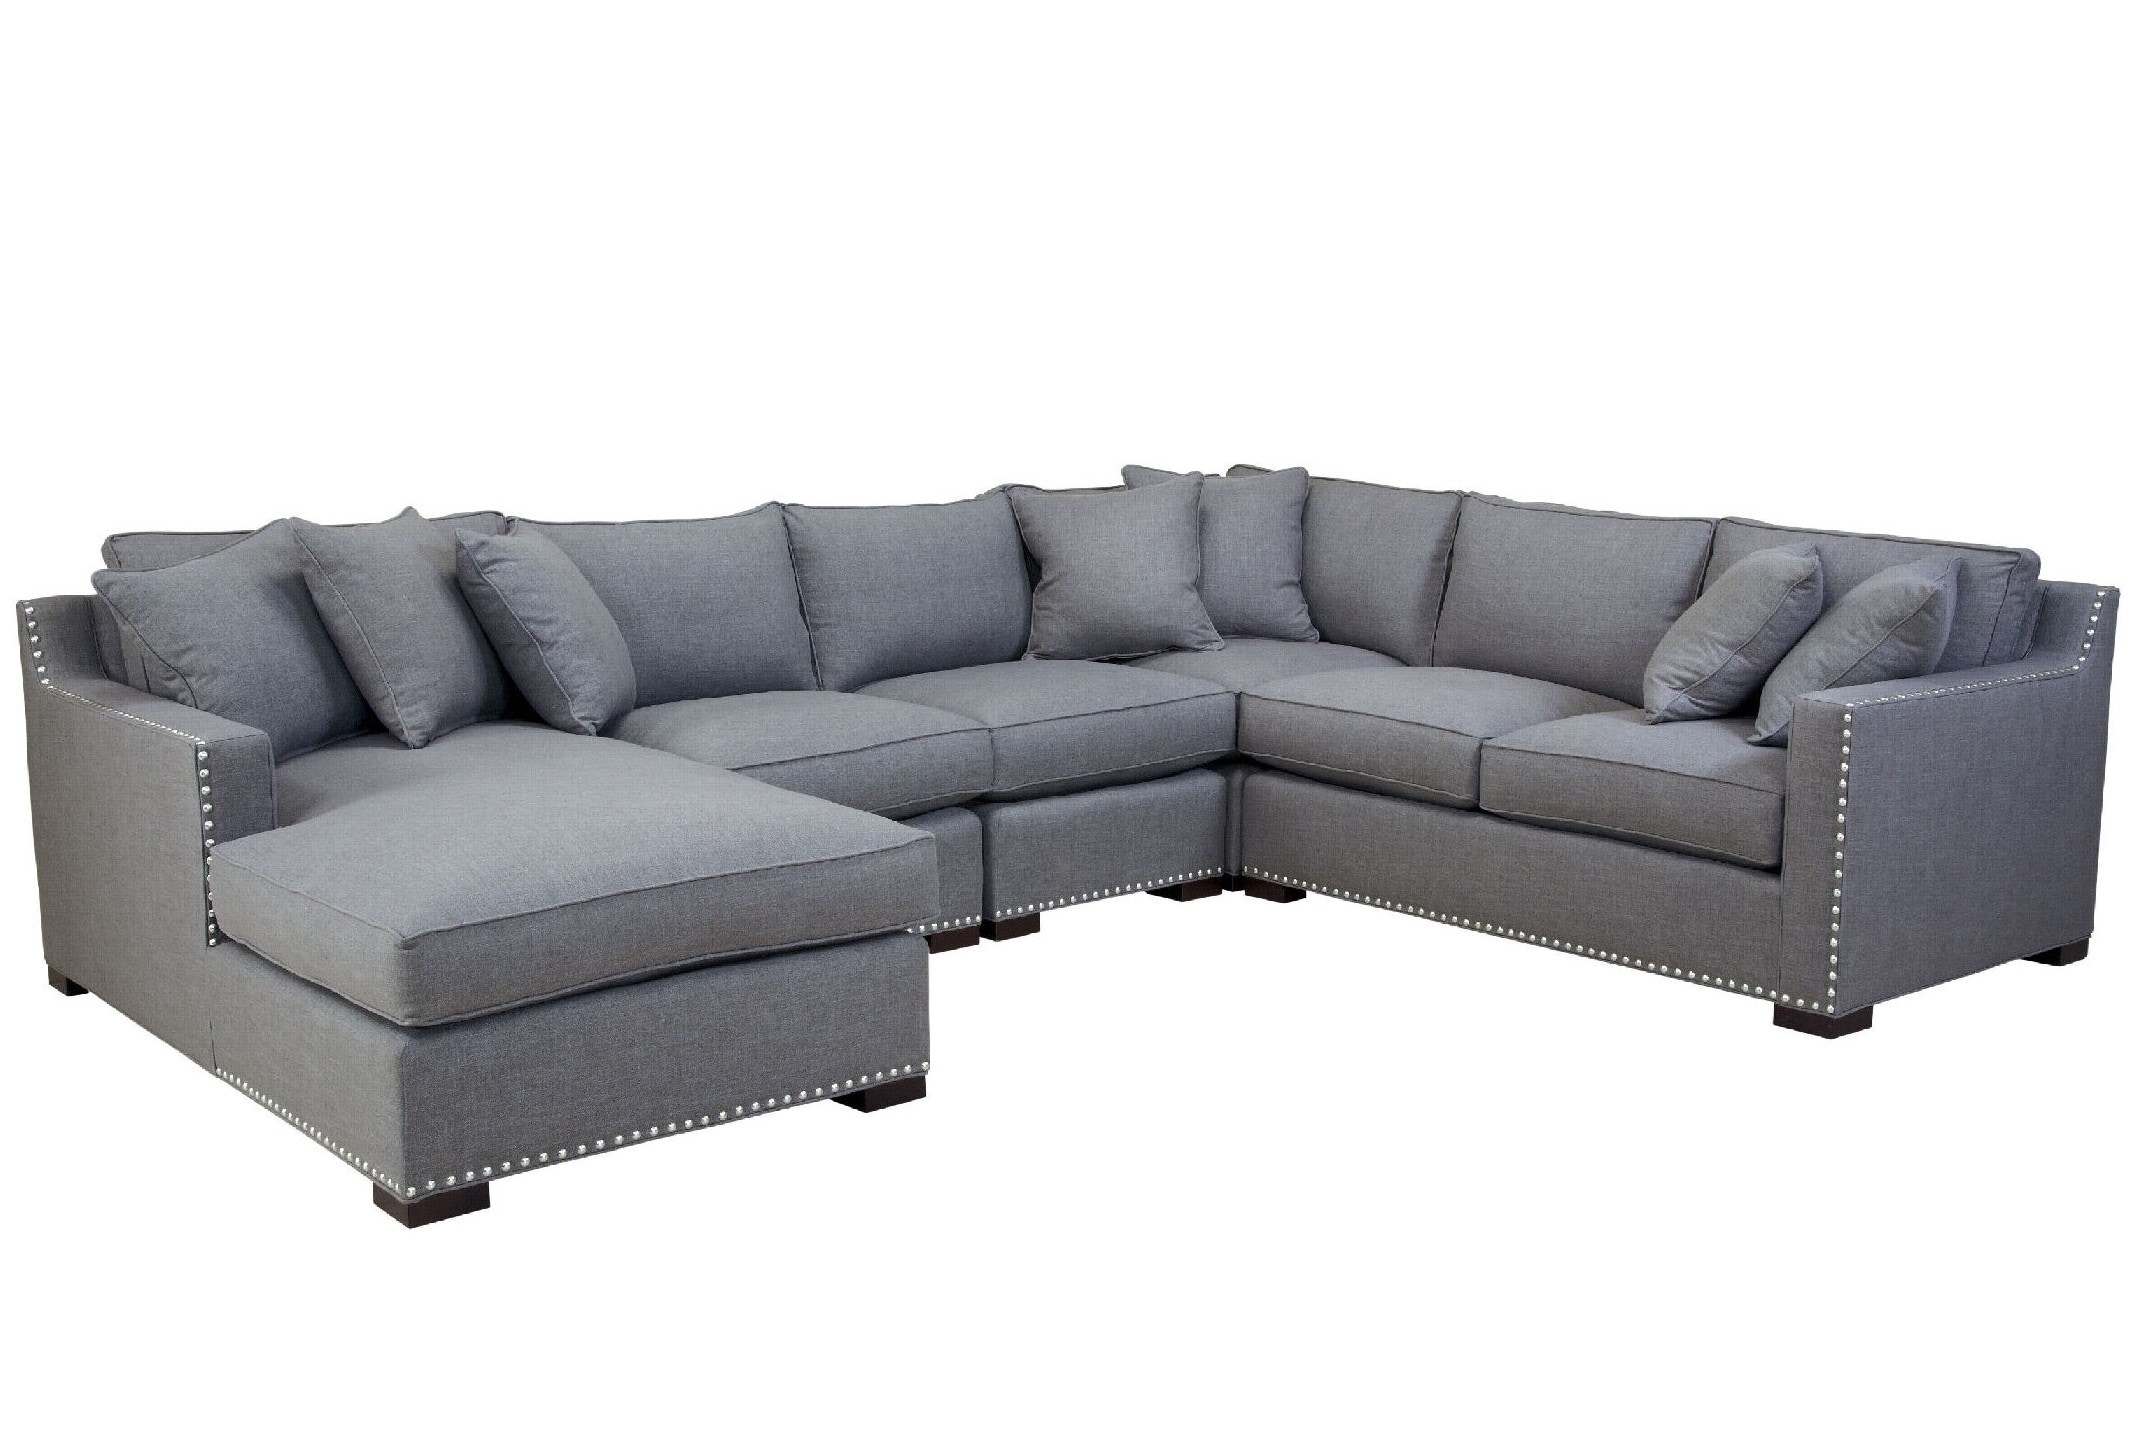 Southern Furniture Jessie 5245 Sectional